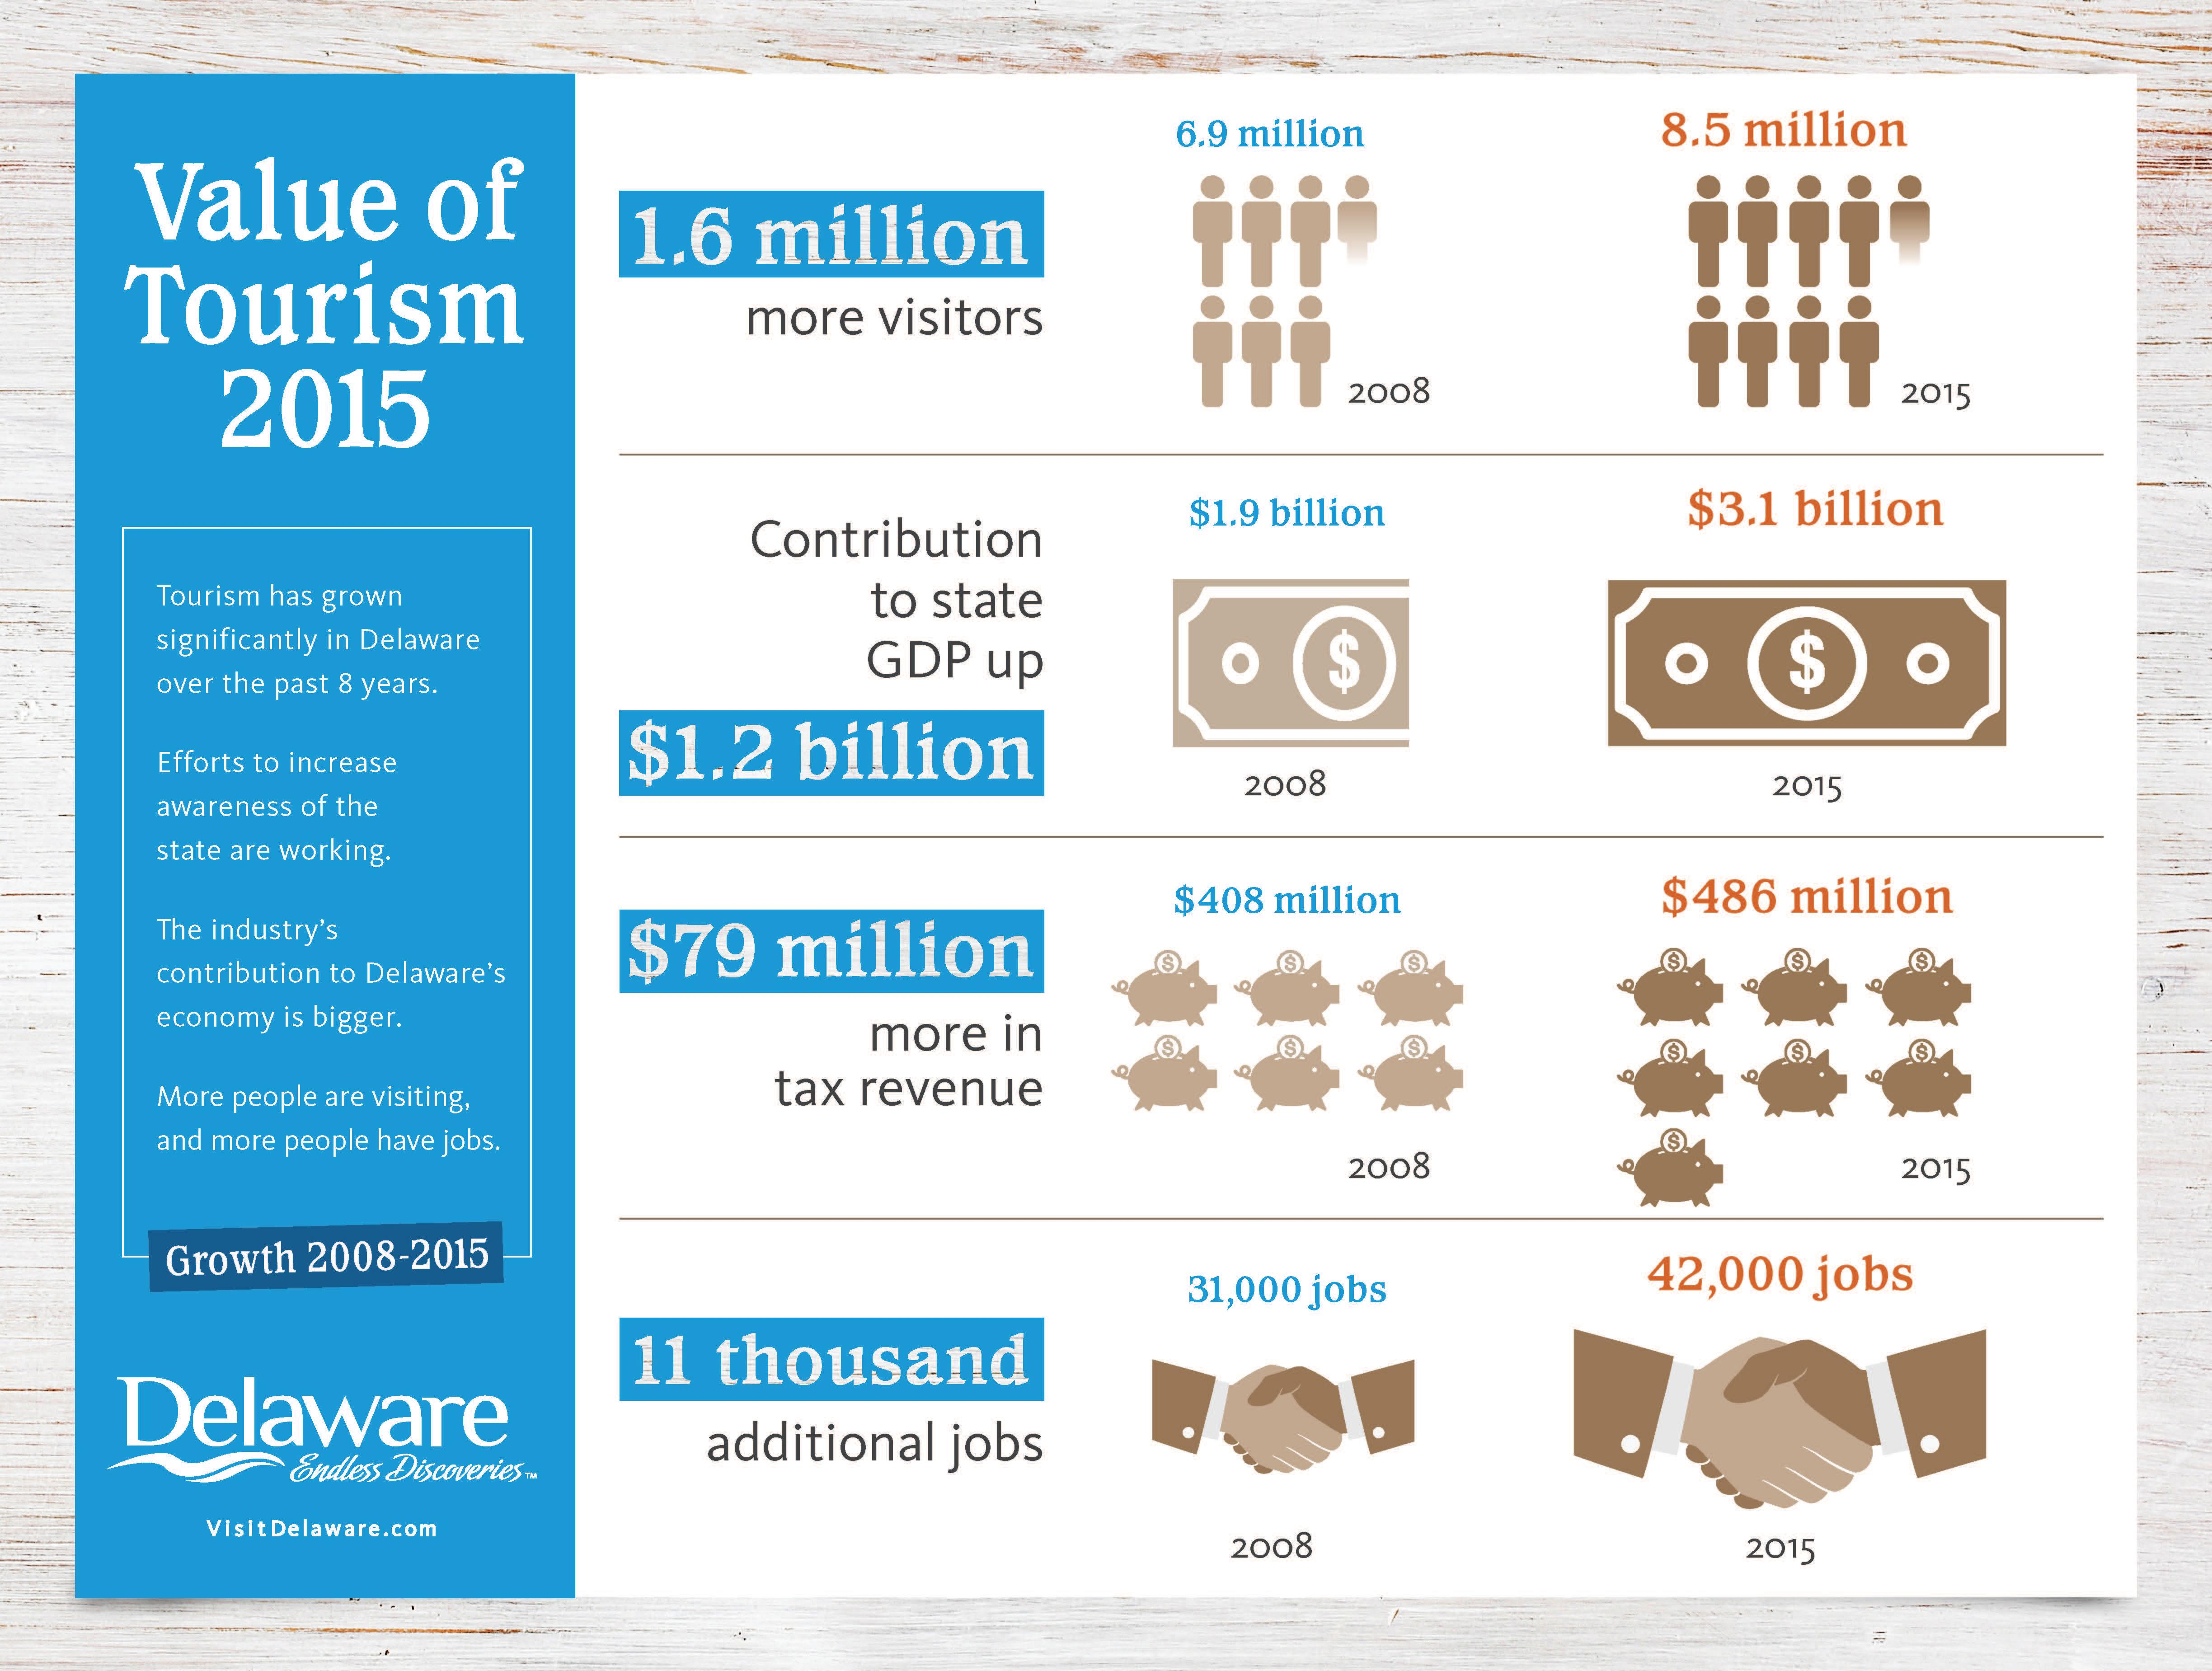 Value of Tourism Delaware Infographic